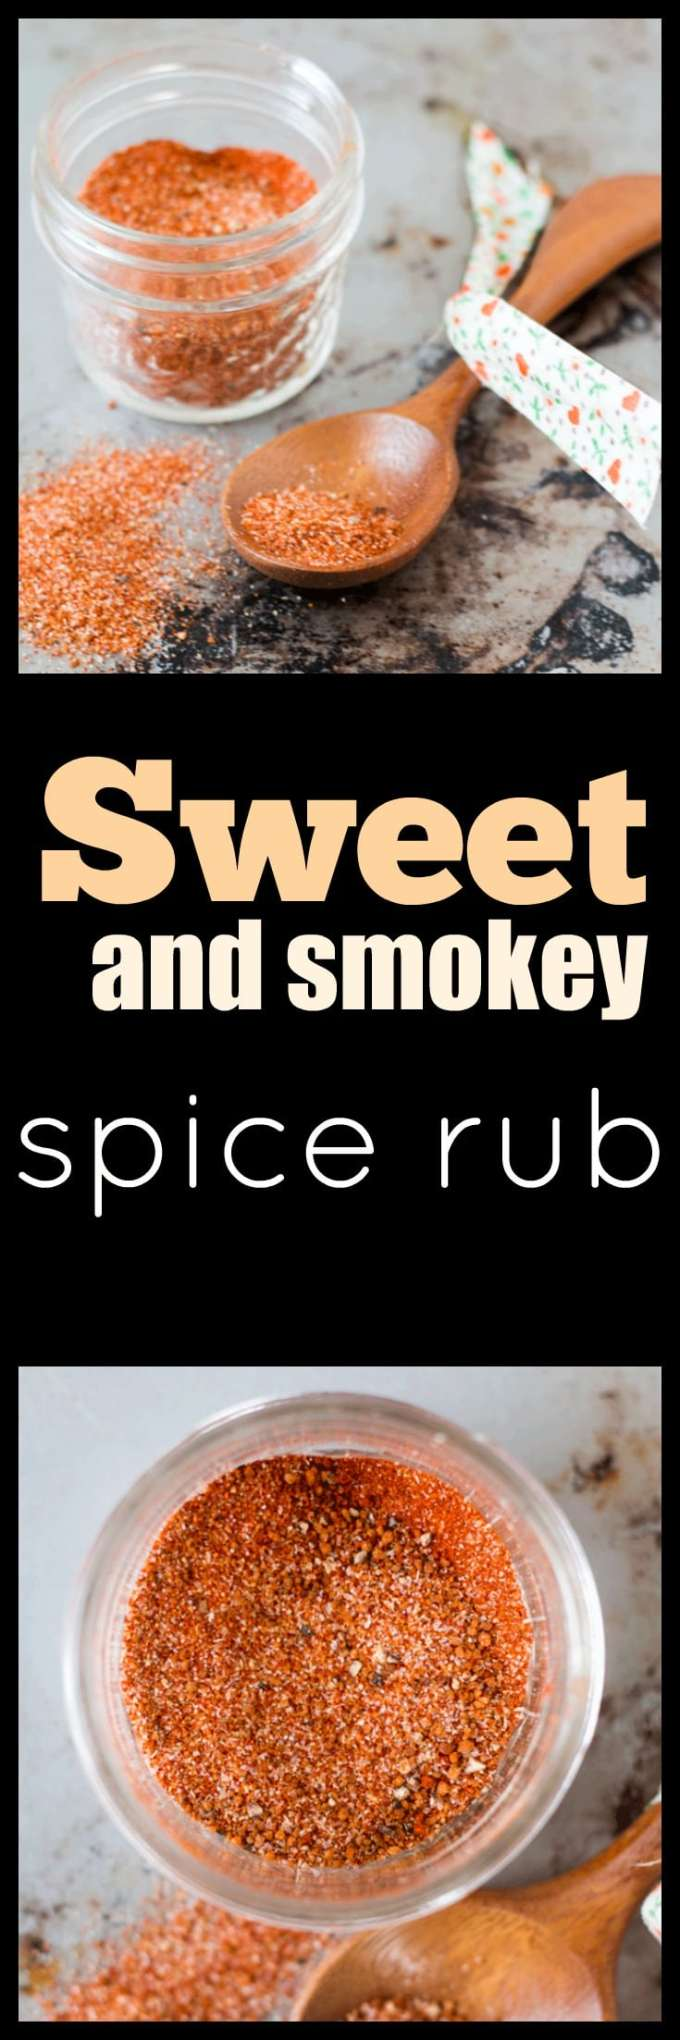 A gorgeous sweet and smokey spice rub for infusing flavor into meats and vegetables. Perfect for when that special dish needs a more a kick.